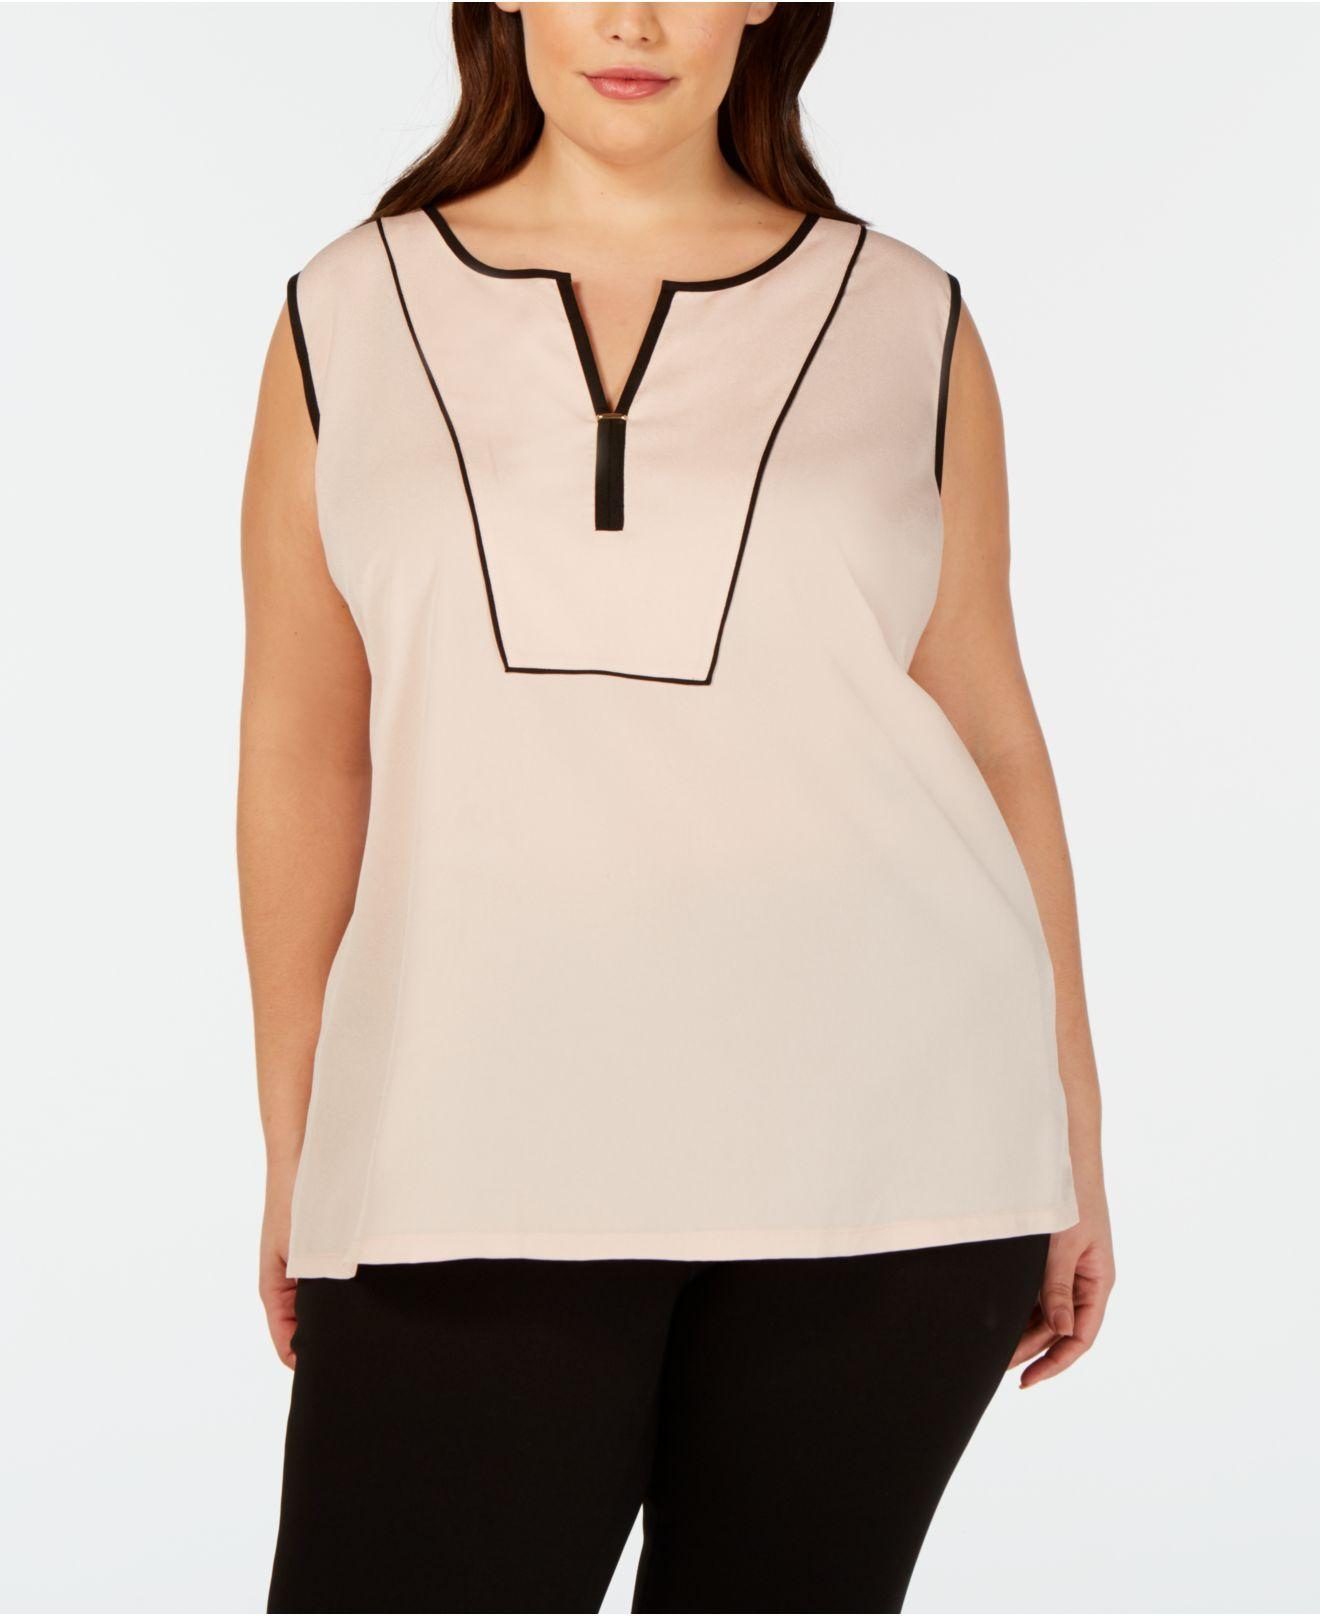 c7e7e855d7506 Lyst - Calvin Klein Plus Size Contrast-piping Top in Natural